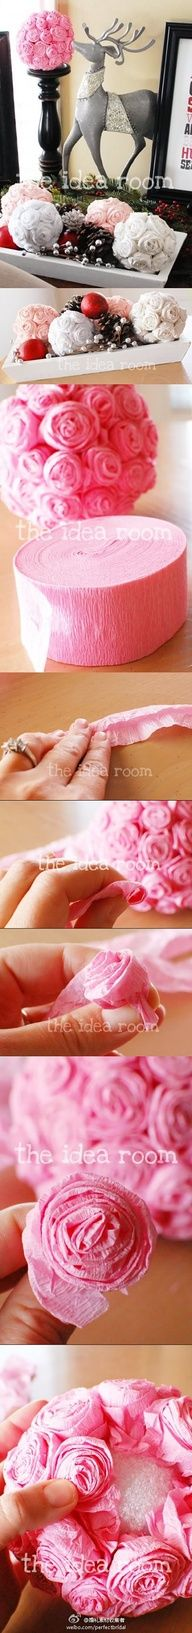 Crepe paper rolled flower-covered balls - this DIY project would work for weddings, bridal showers or holiday decorations..